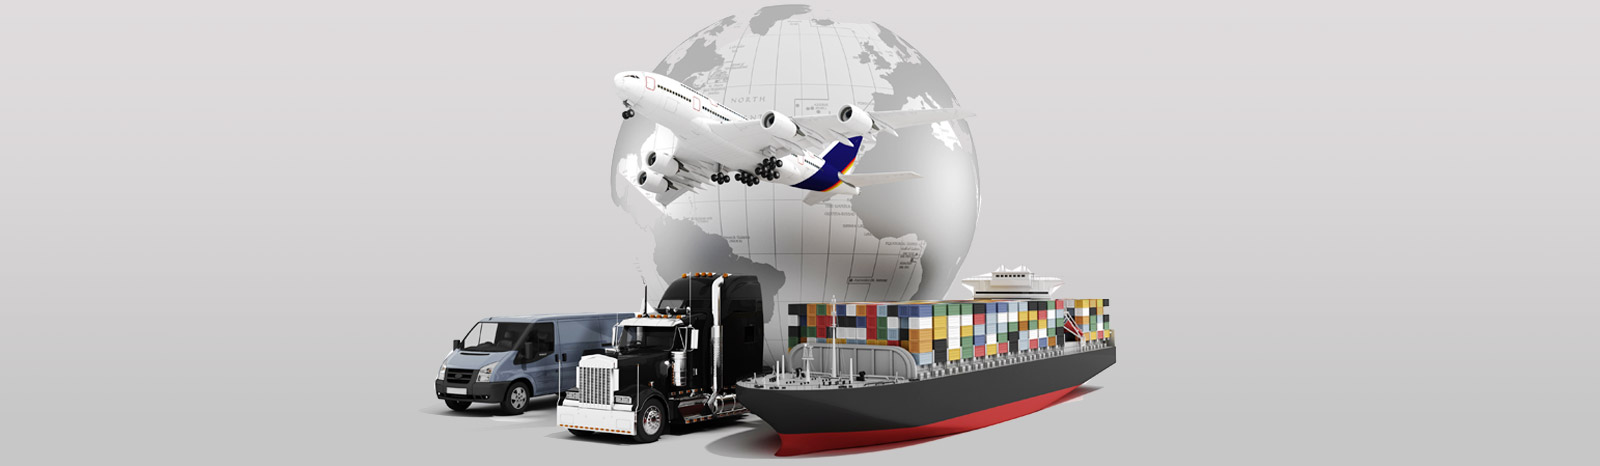 shipping and logistics companies in chennai